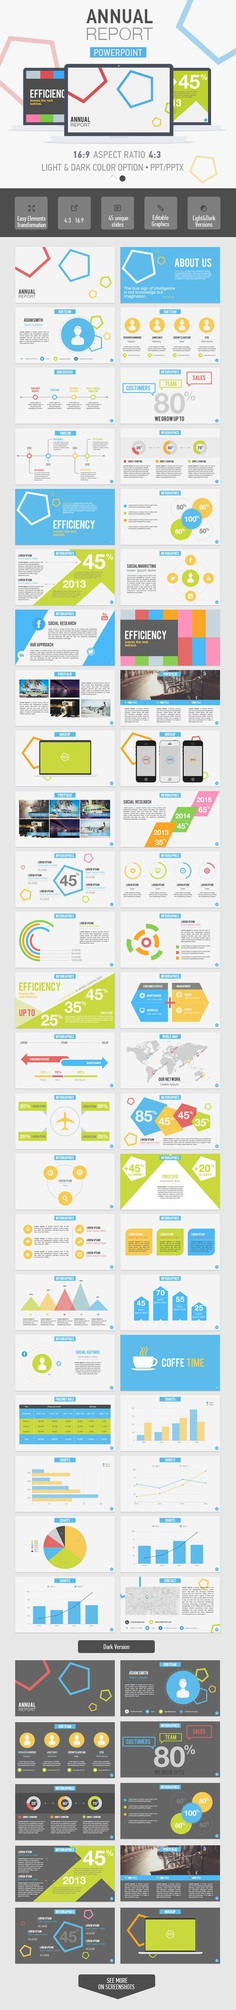 Annual Report Powerpoint Template - Business PowerPoint Templates